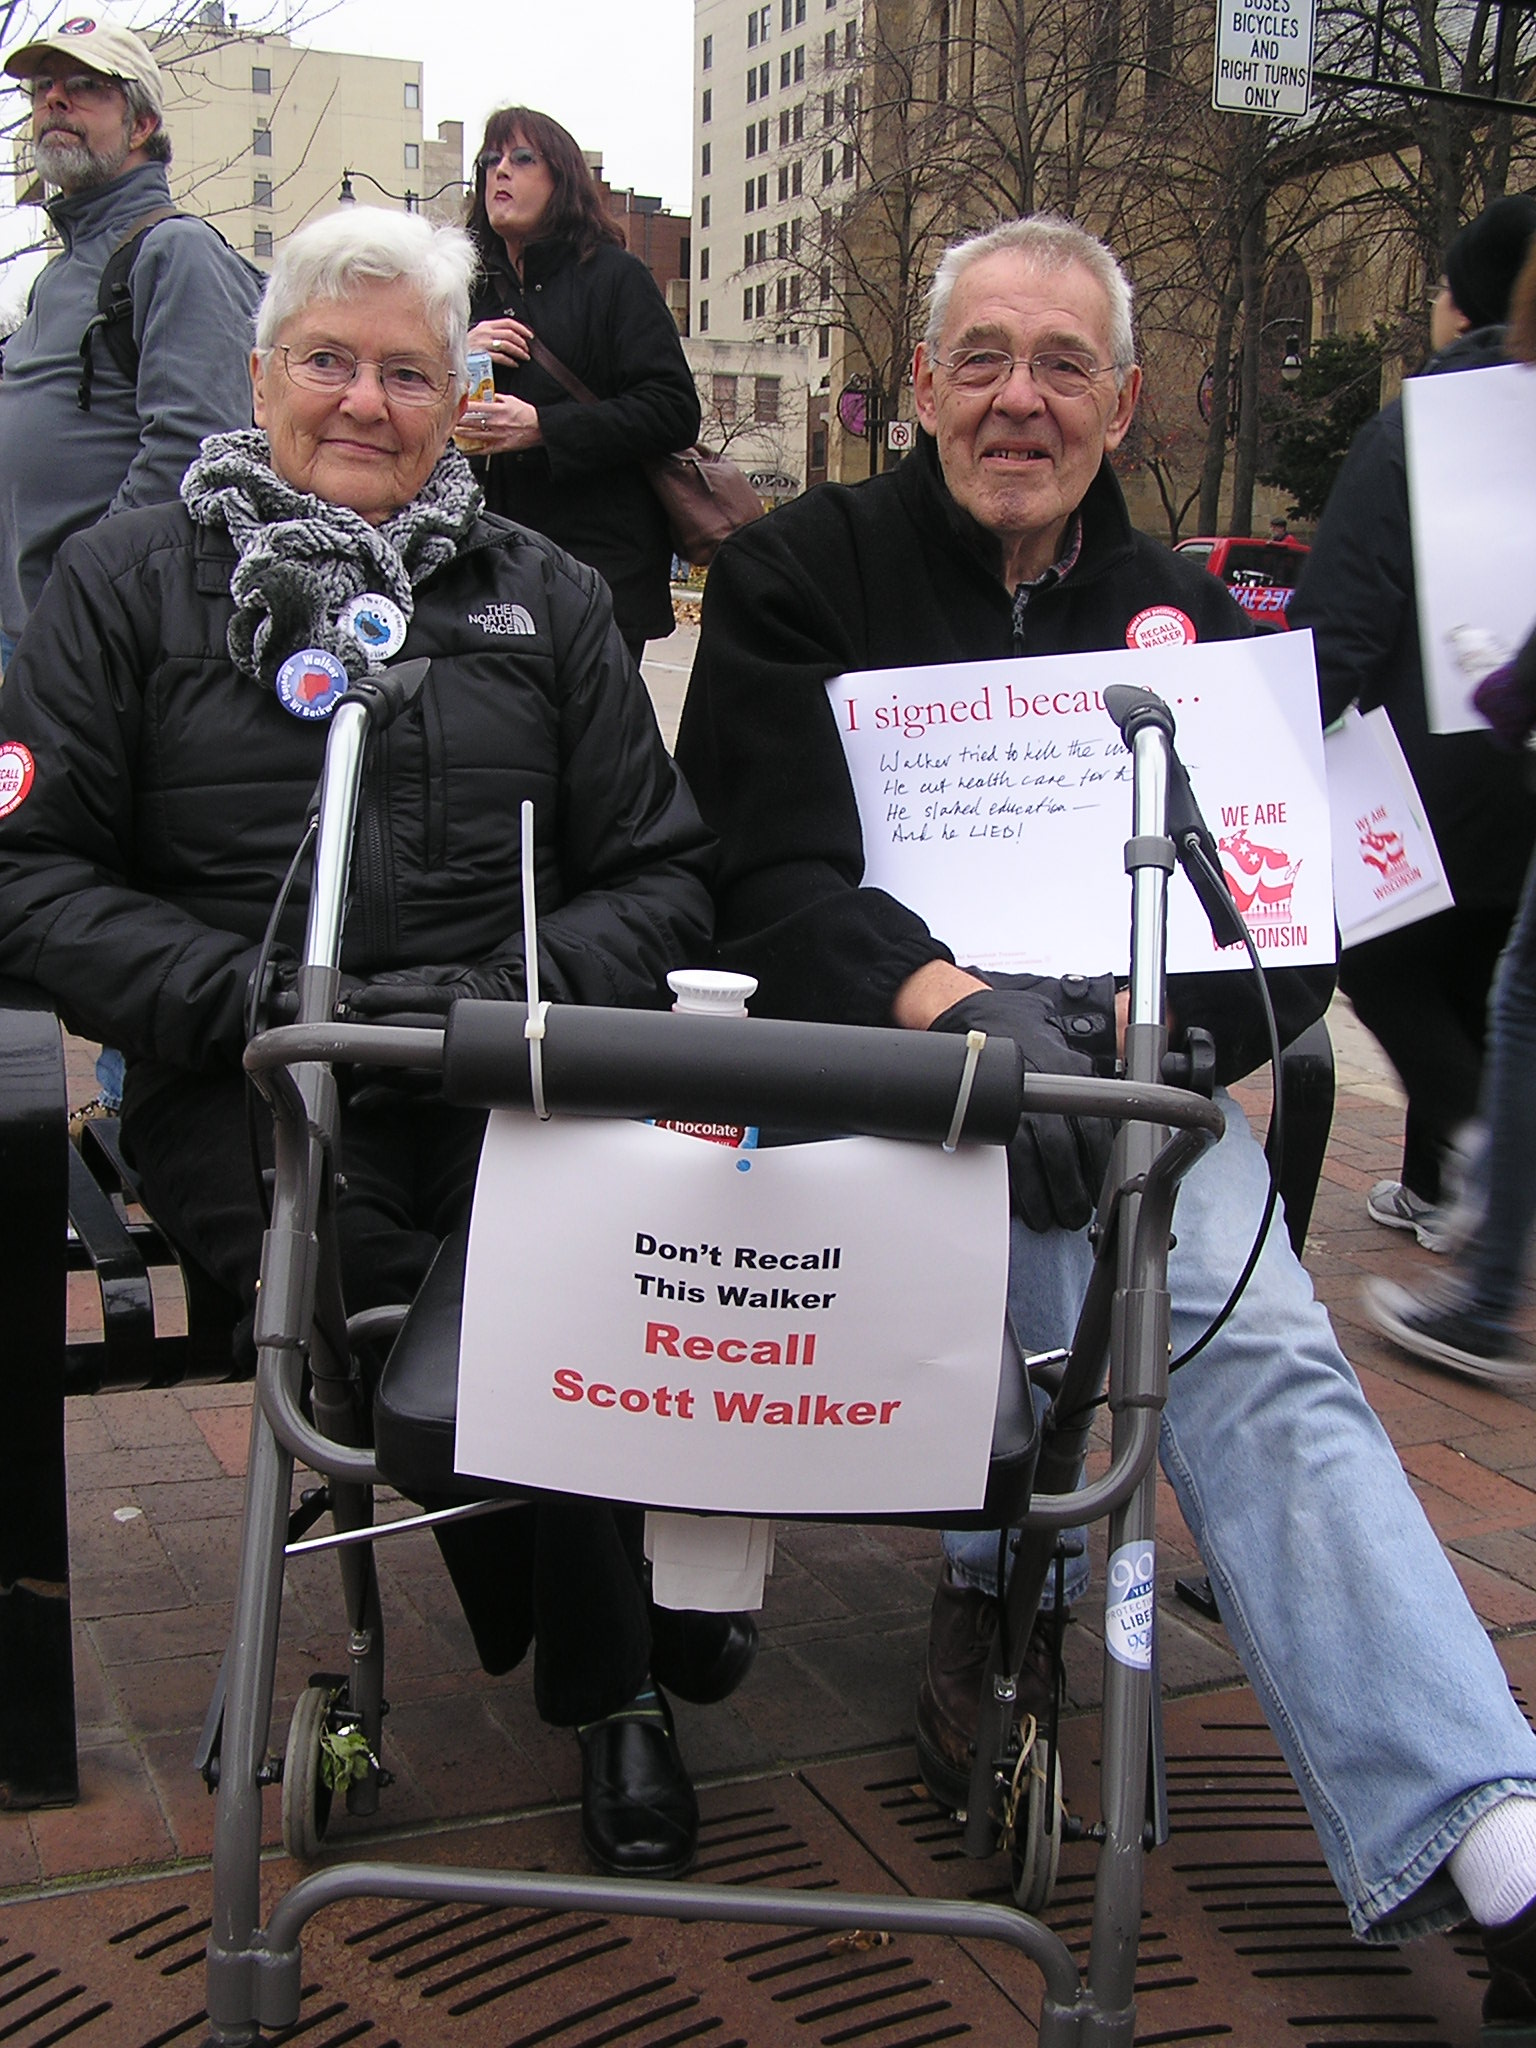 Norma & Mike Briggs – Voices from the Rally Crowd (pt 3)